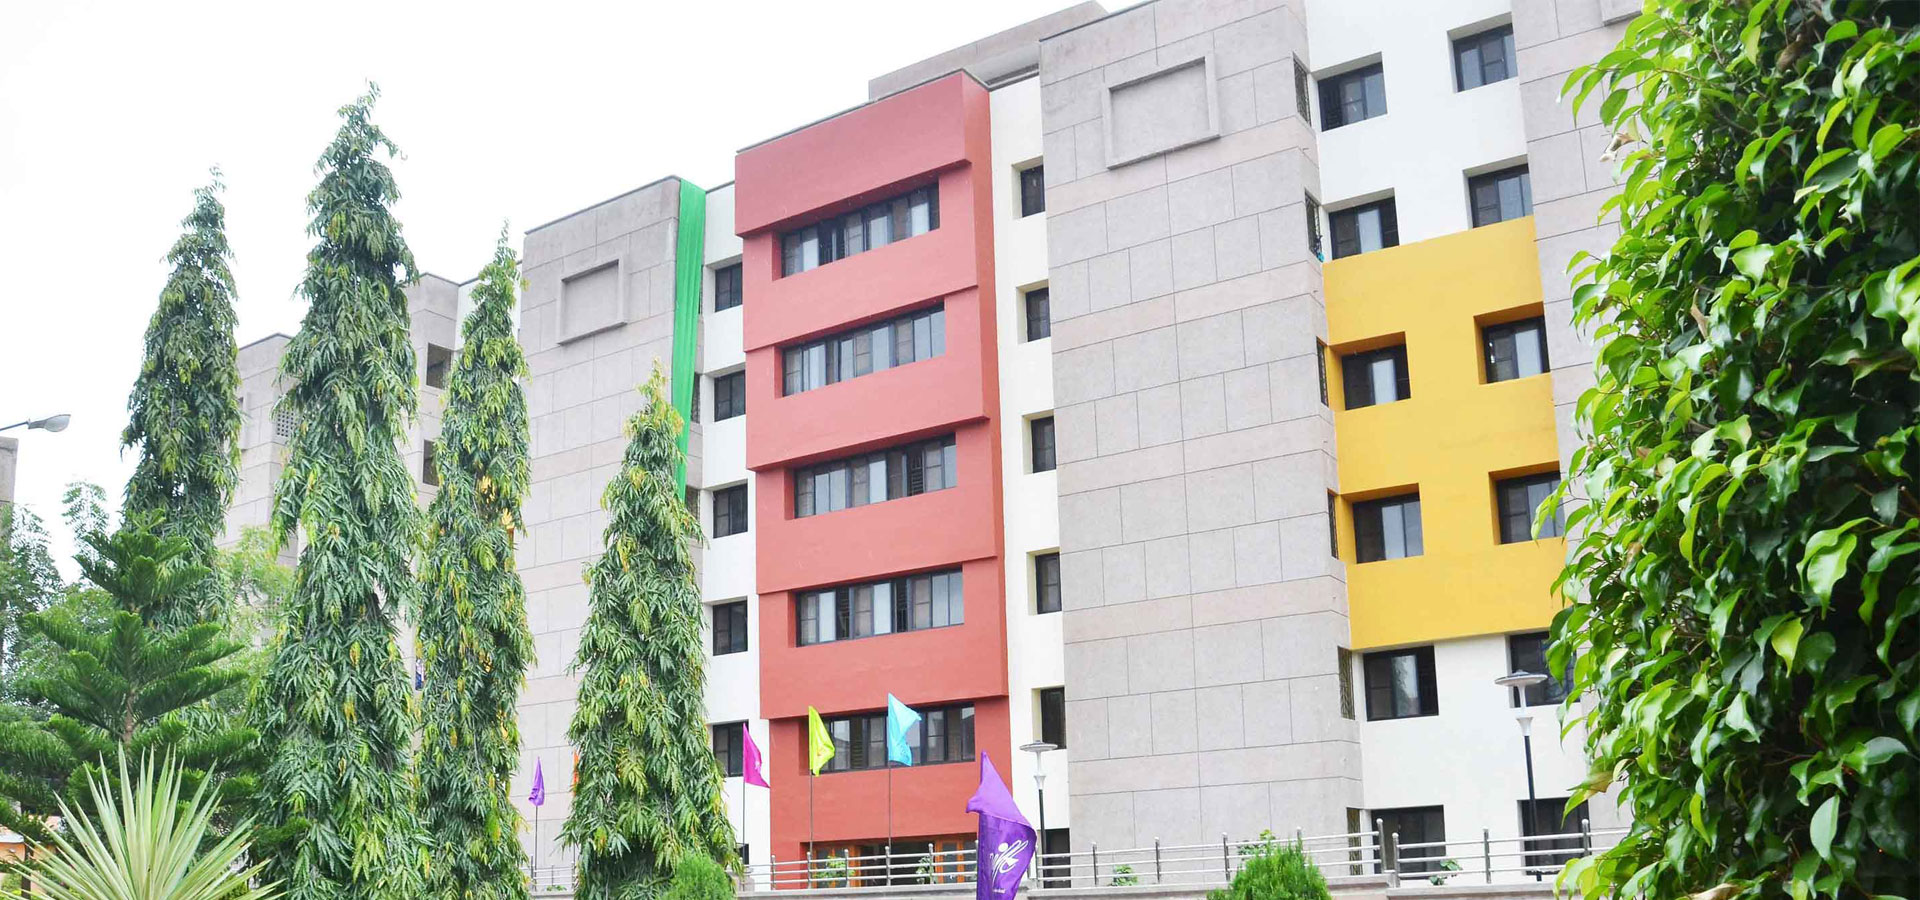 Nift Hyderabad Courses Fees Ranking Admission Placement Cutoff Eligibility